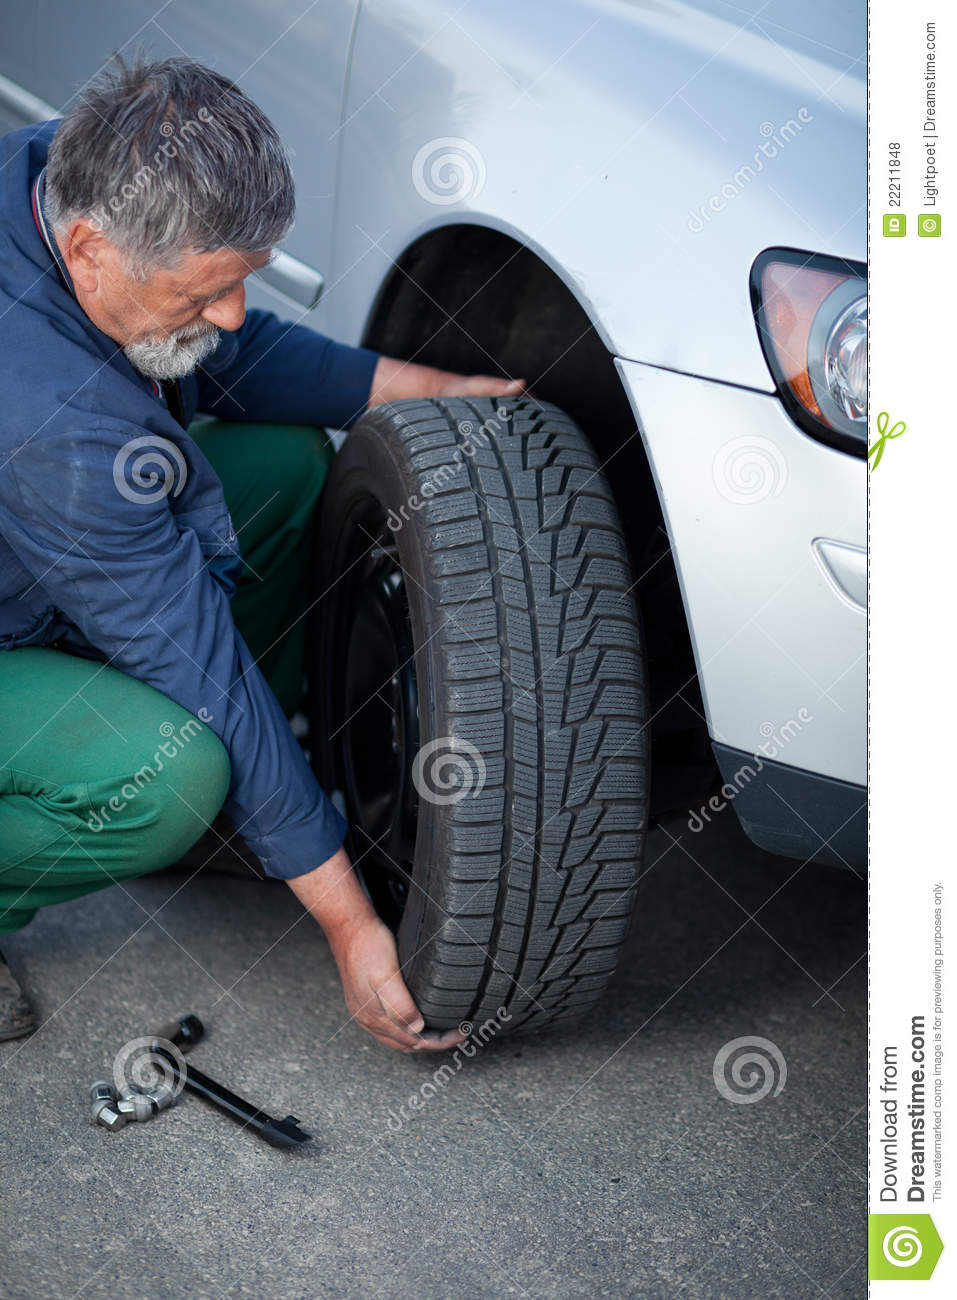 No Credit Check Car Lots >> Mechanic Changing A Wheel Of A Modern Car Royalty Free Stock Photos - Image: 22211848